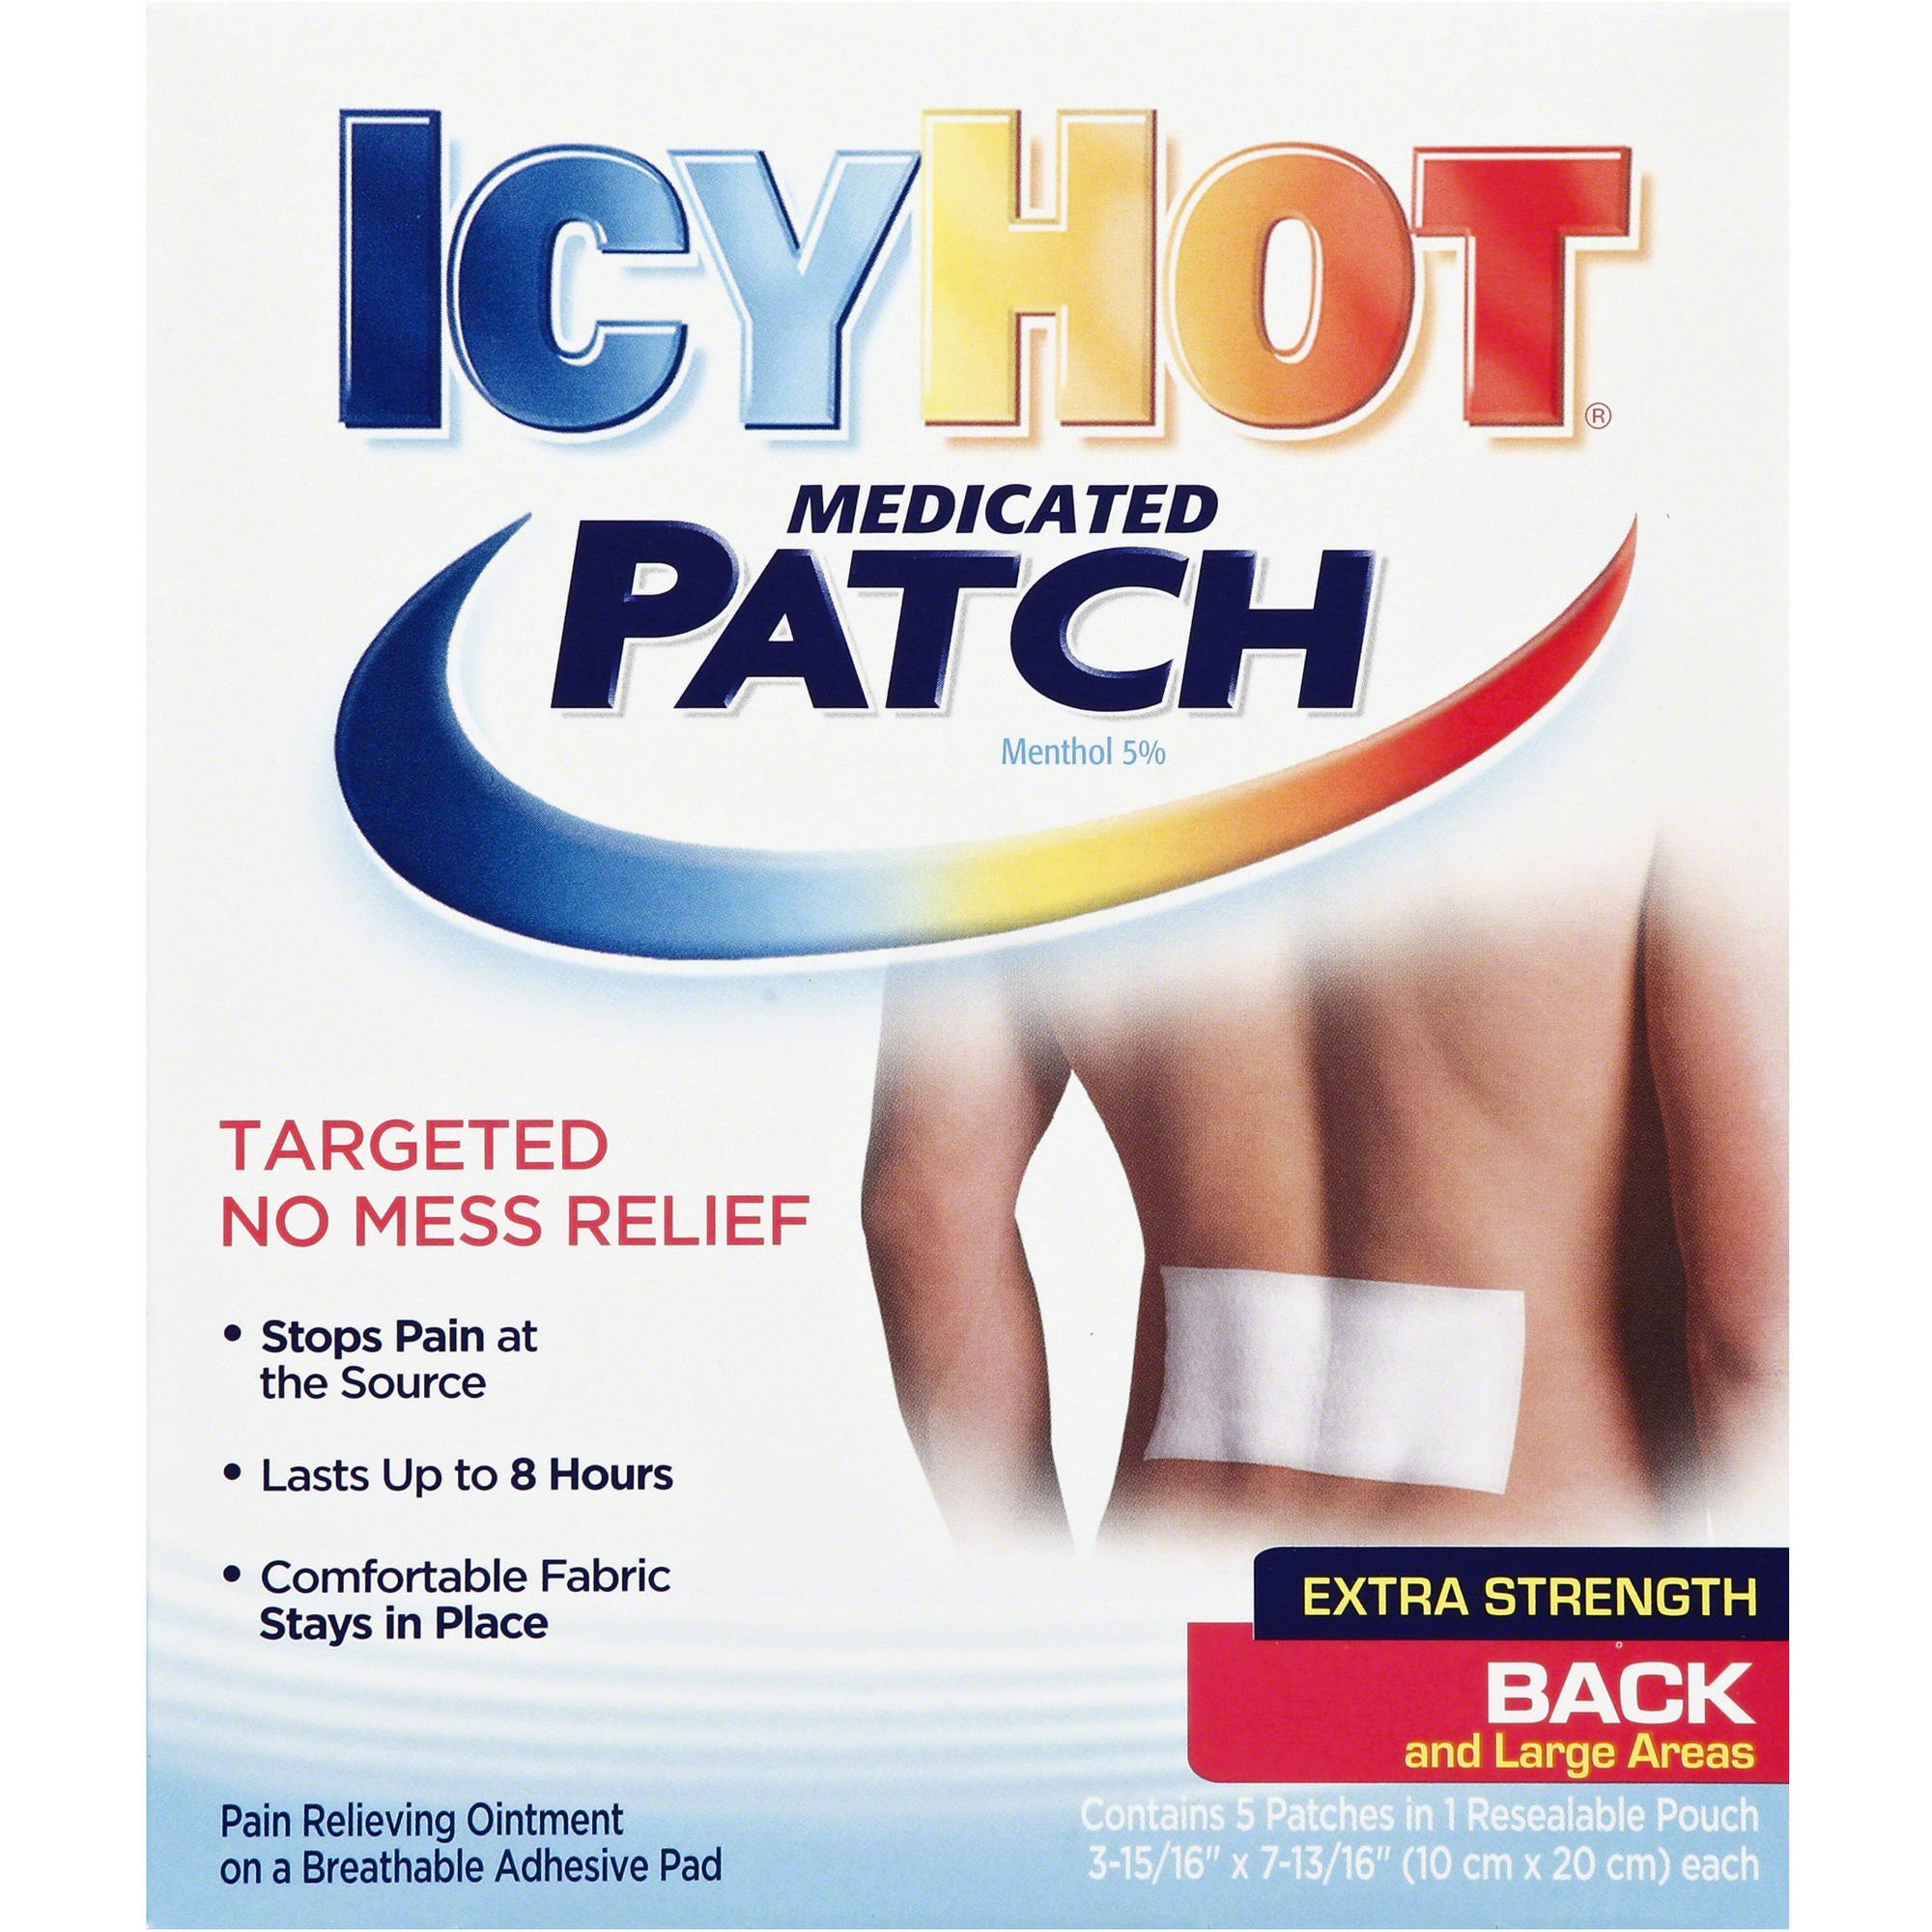 icy hot extra strength back large areas medicated patch count icy hot extra strength back large areas medicated patch 5 count com